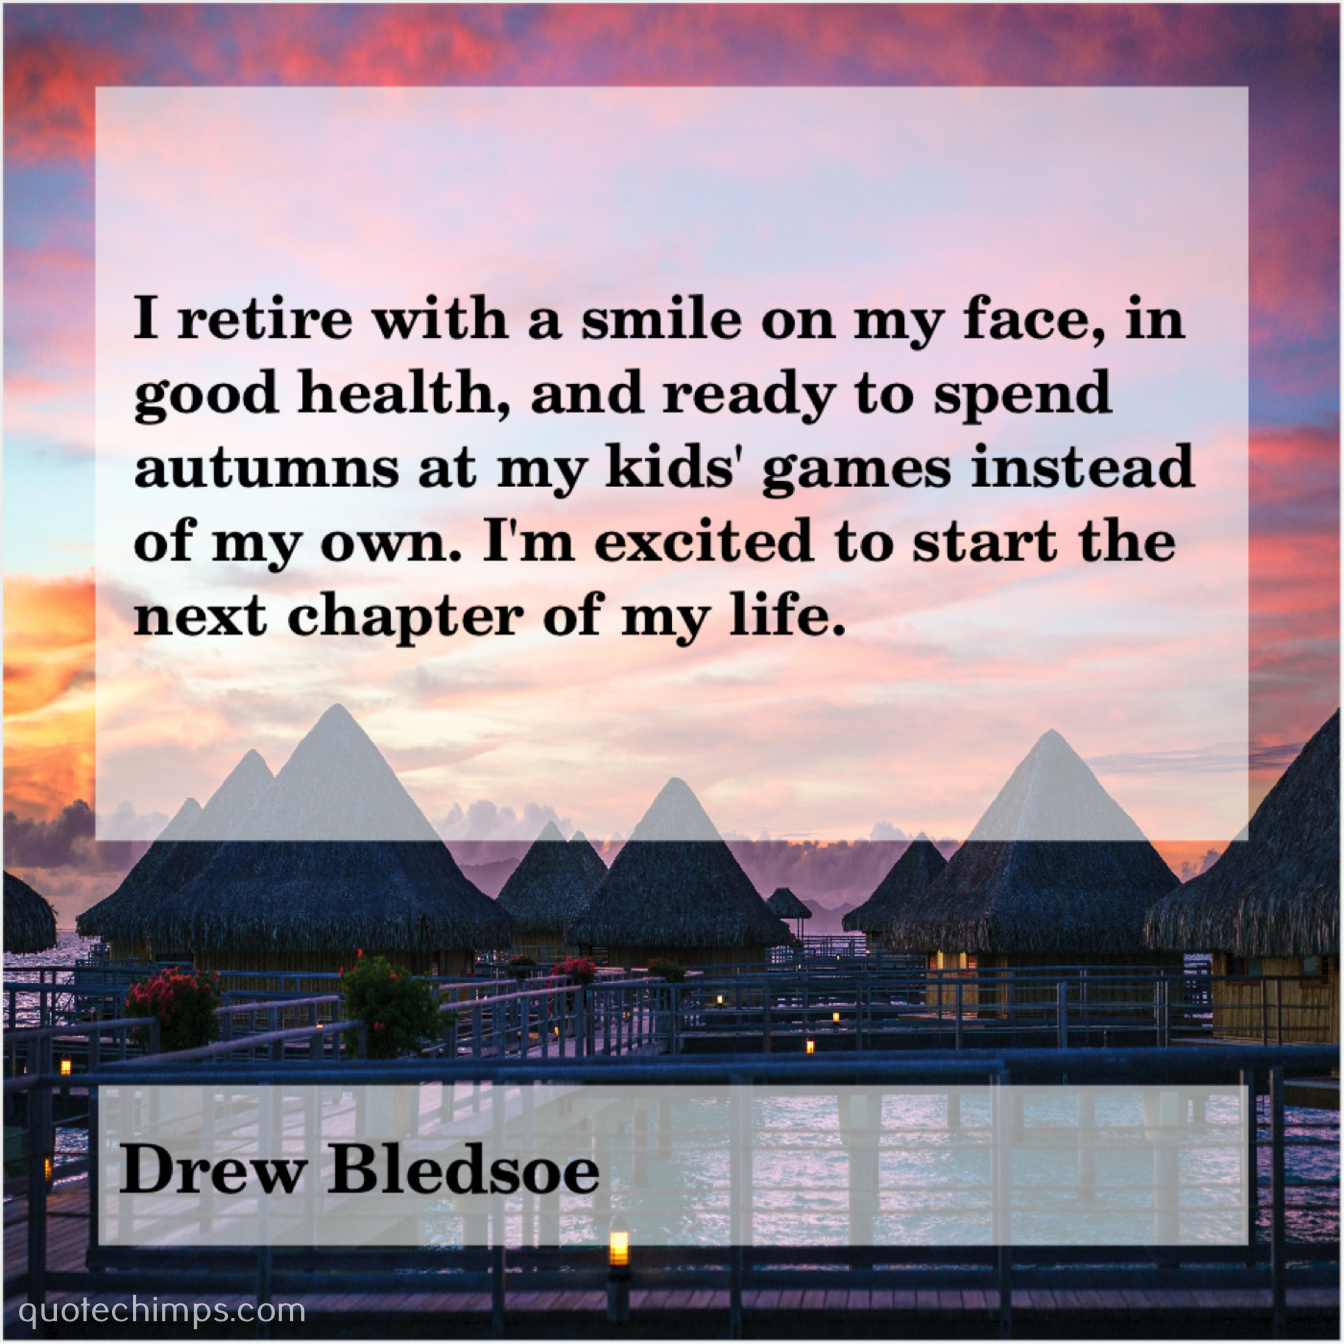 Drew Bledsoe Quote Chimps